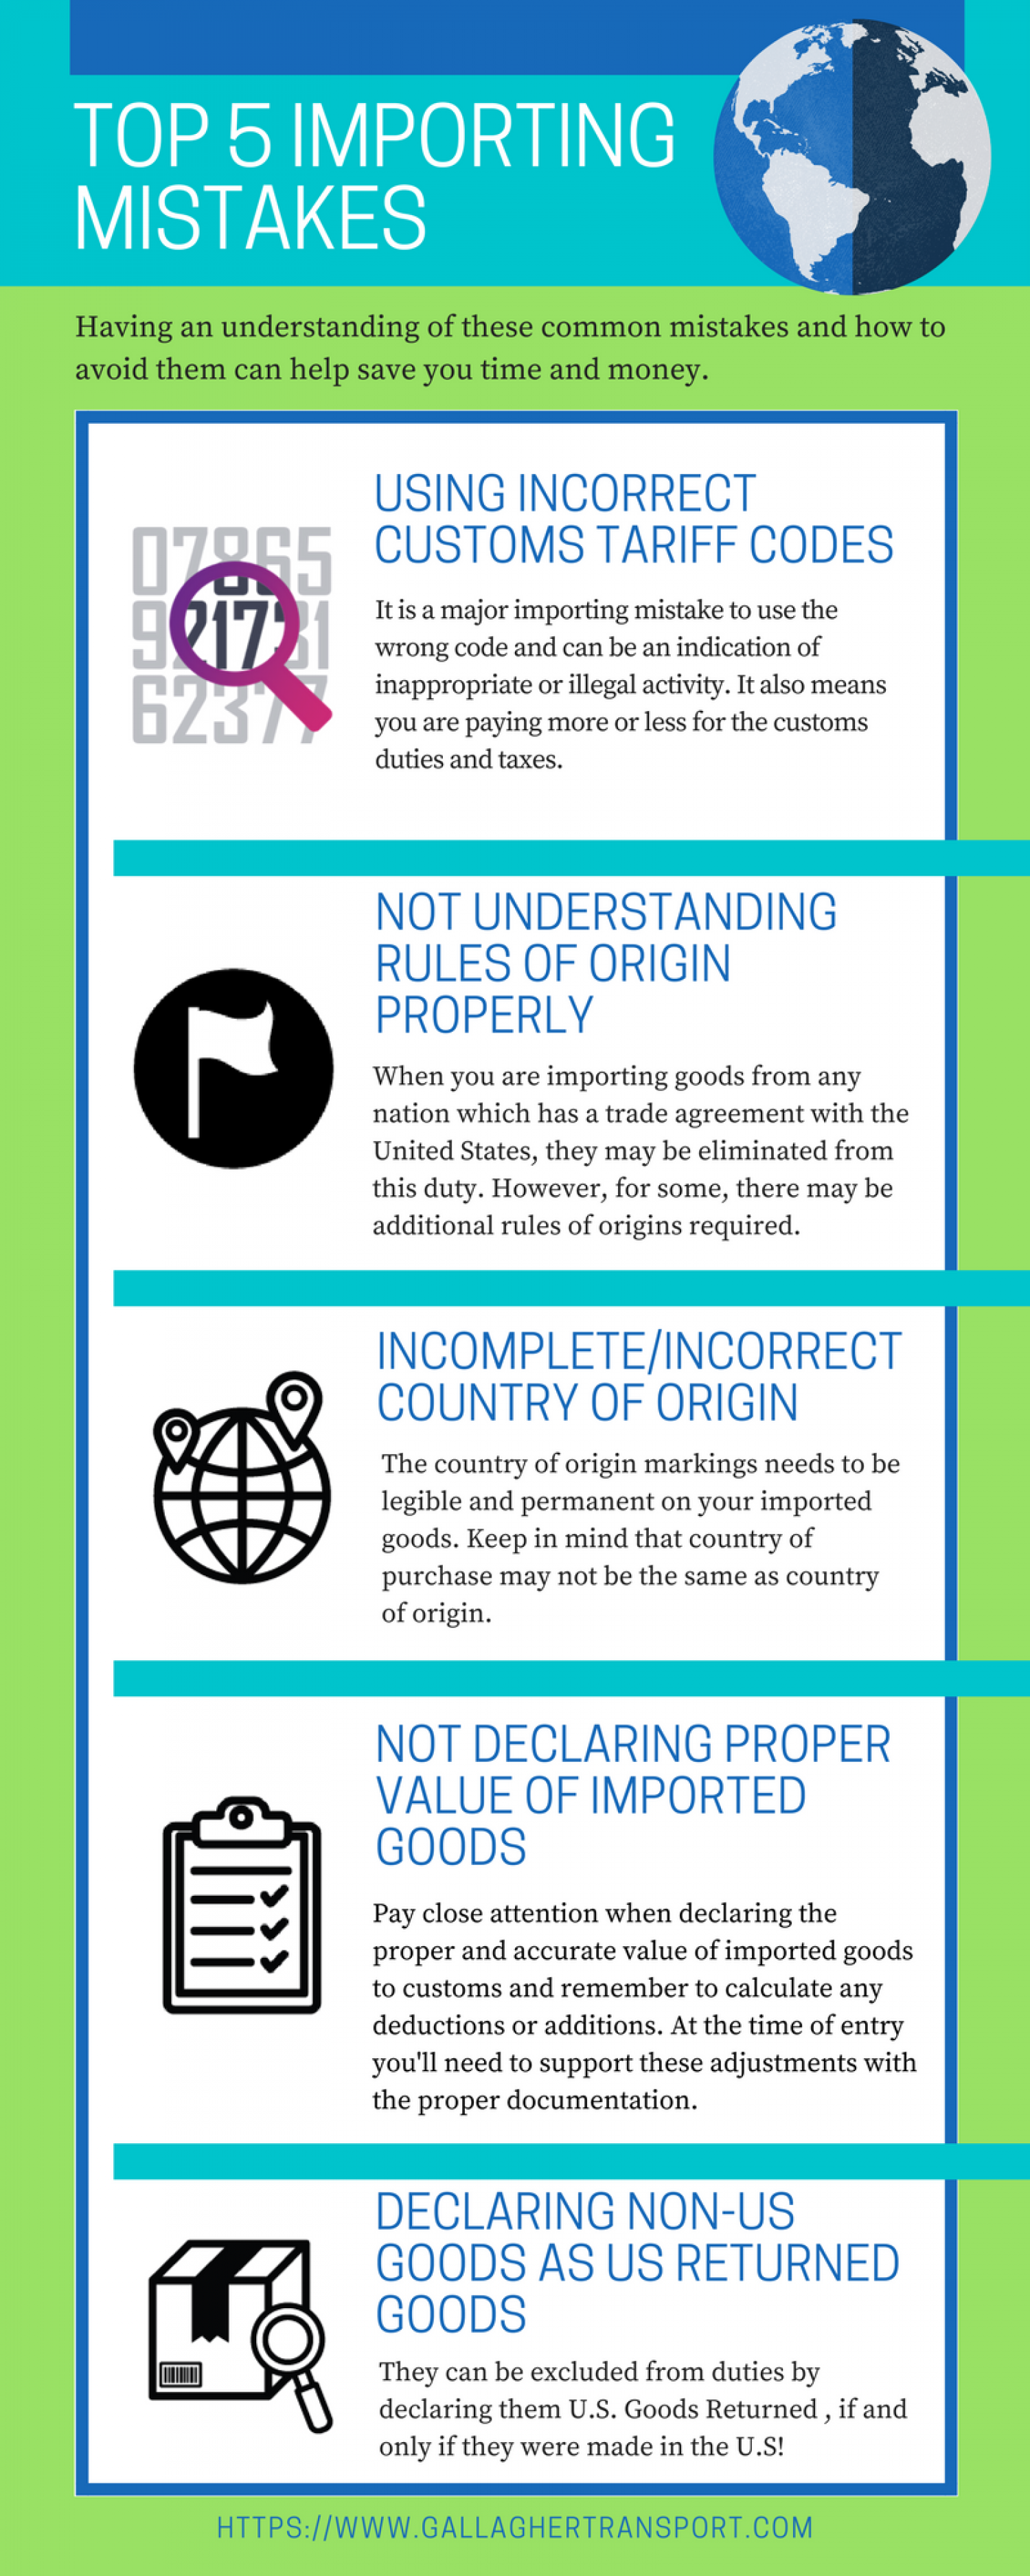 Top 5 Importing Mistakes Infographic